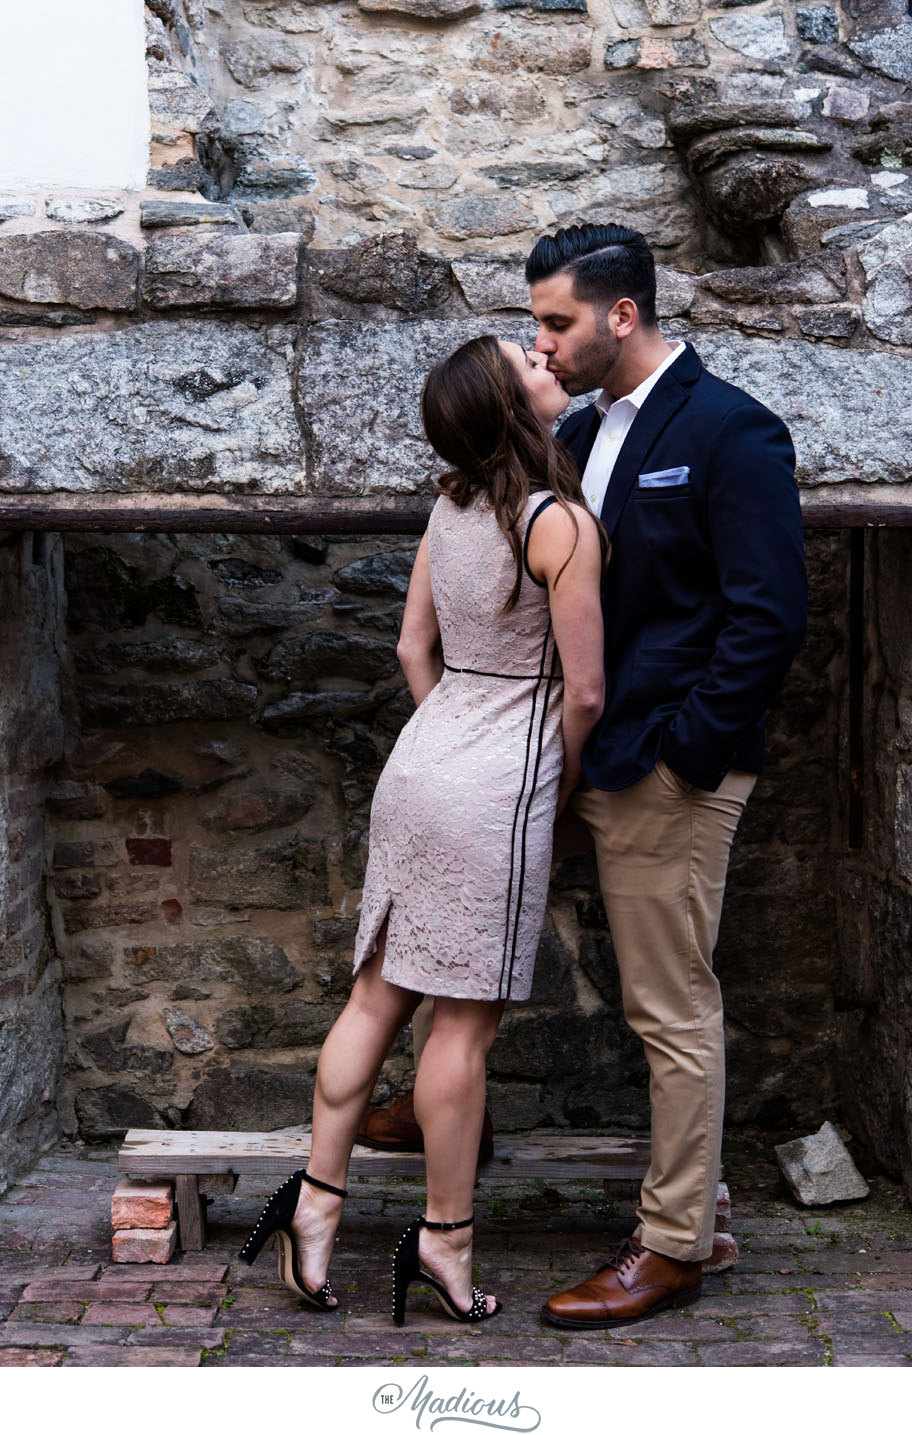 Patapsco Female Institute Historic Park engagement photos_80.jpg